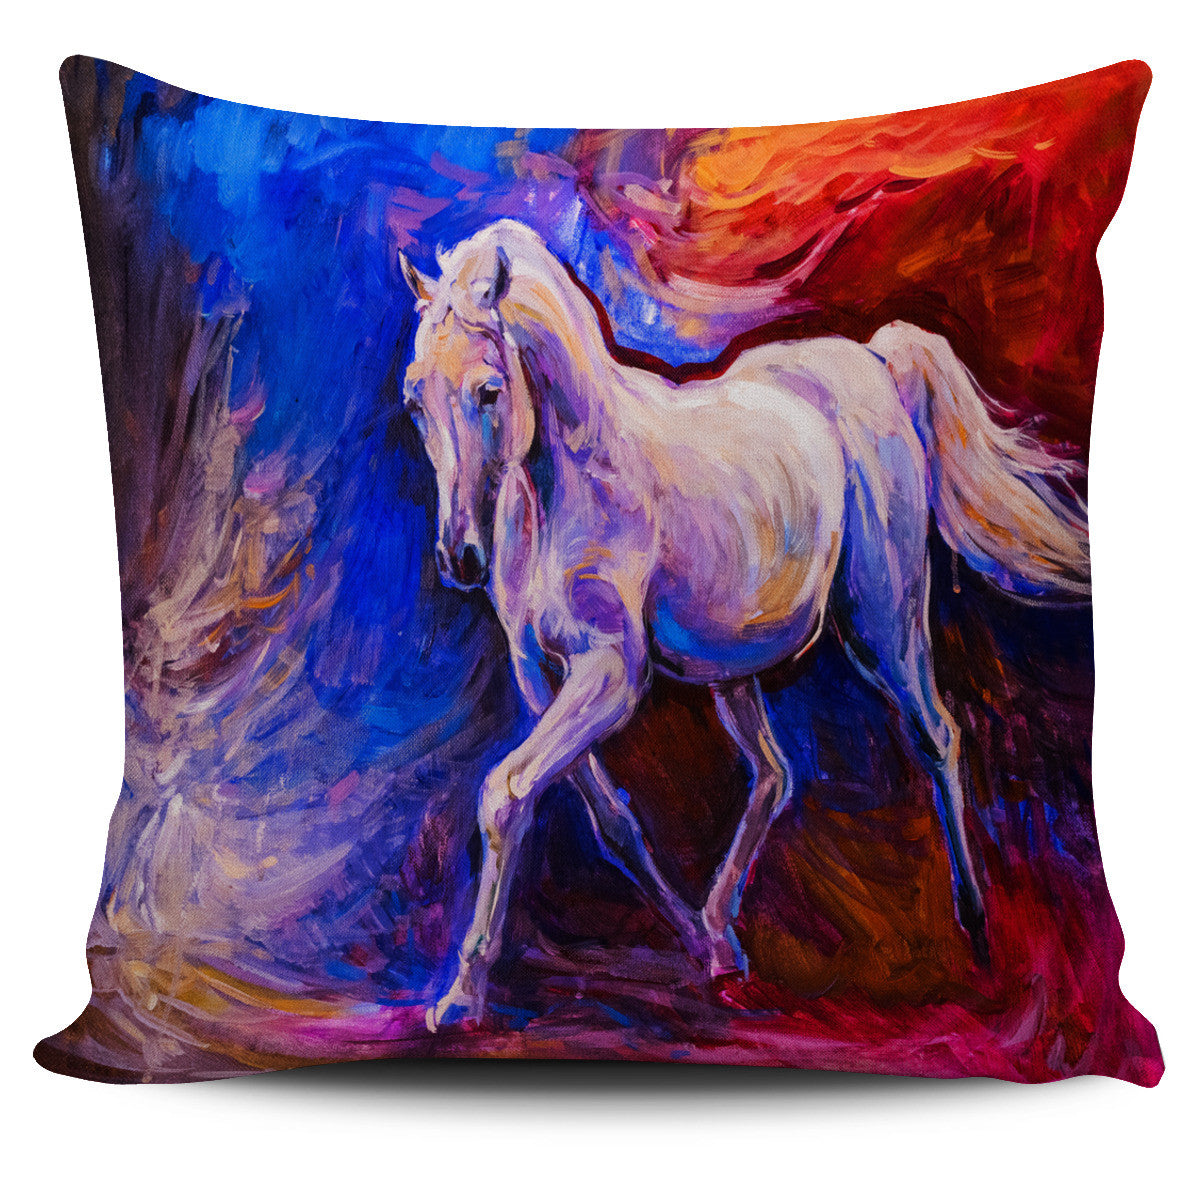 Horse Series Pillow Cover II Offer